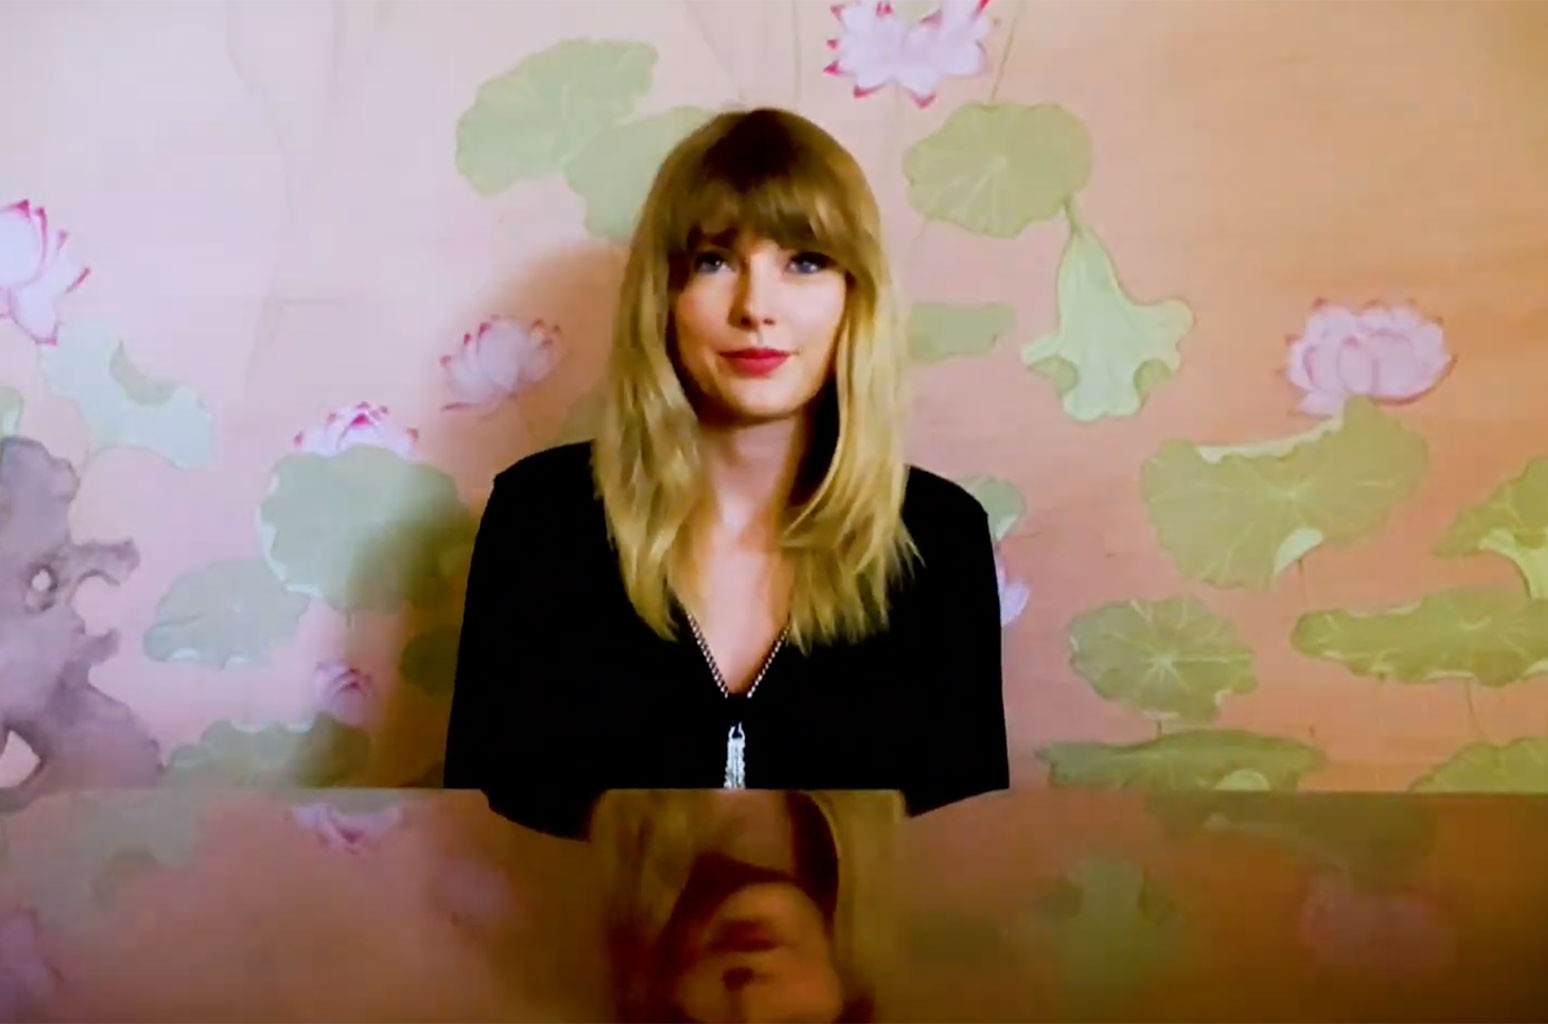 taylor-swift-performed-soon-youll-get-better-one-world-together-at-home-concert